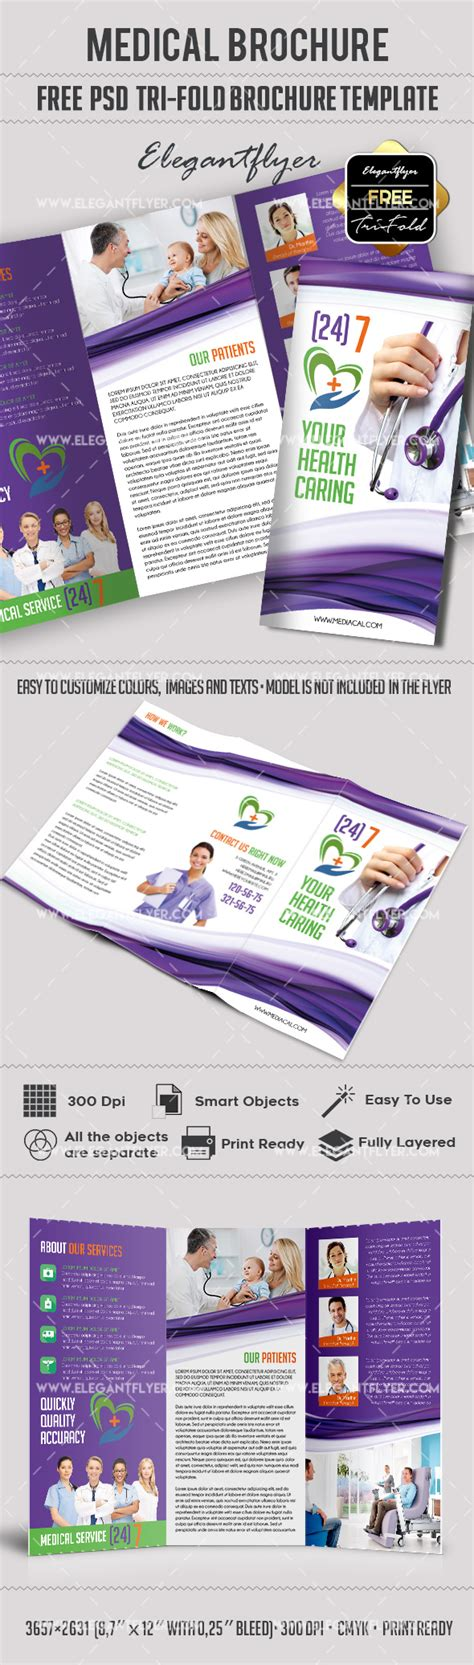 download medical free tri fold psd brochure template